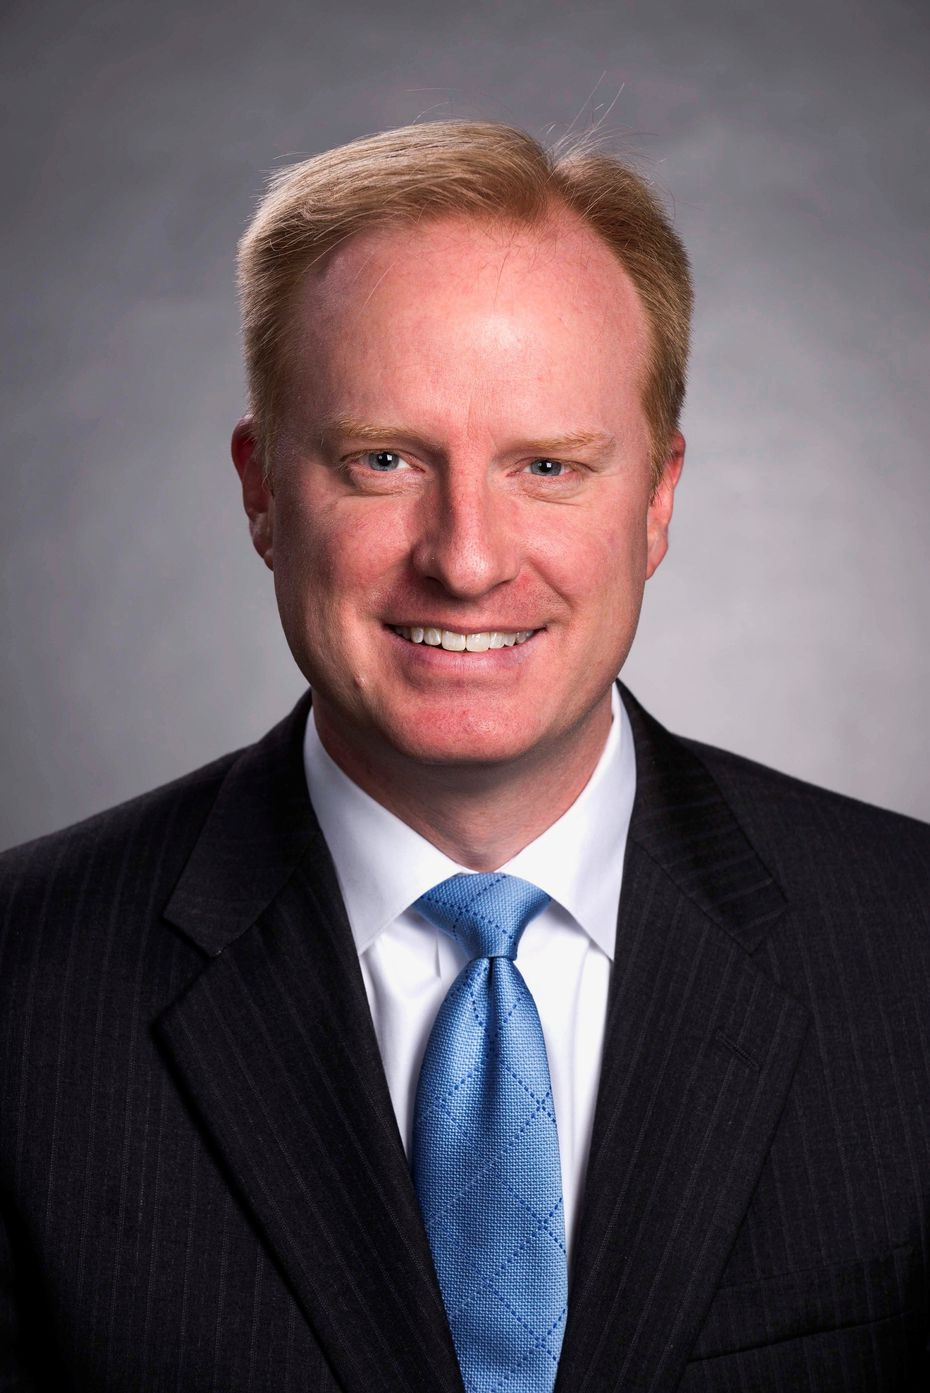 Harrison Keller was appointed as Higher Education Commissioner by the Texas Higher Education Coordinating Board Wednesday.